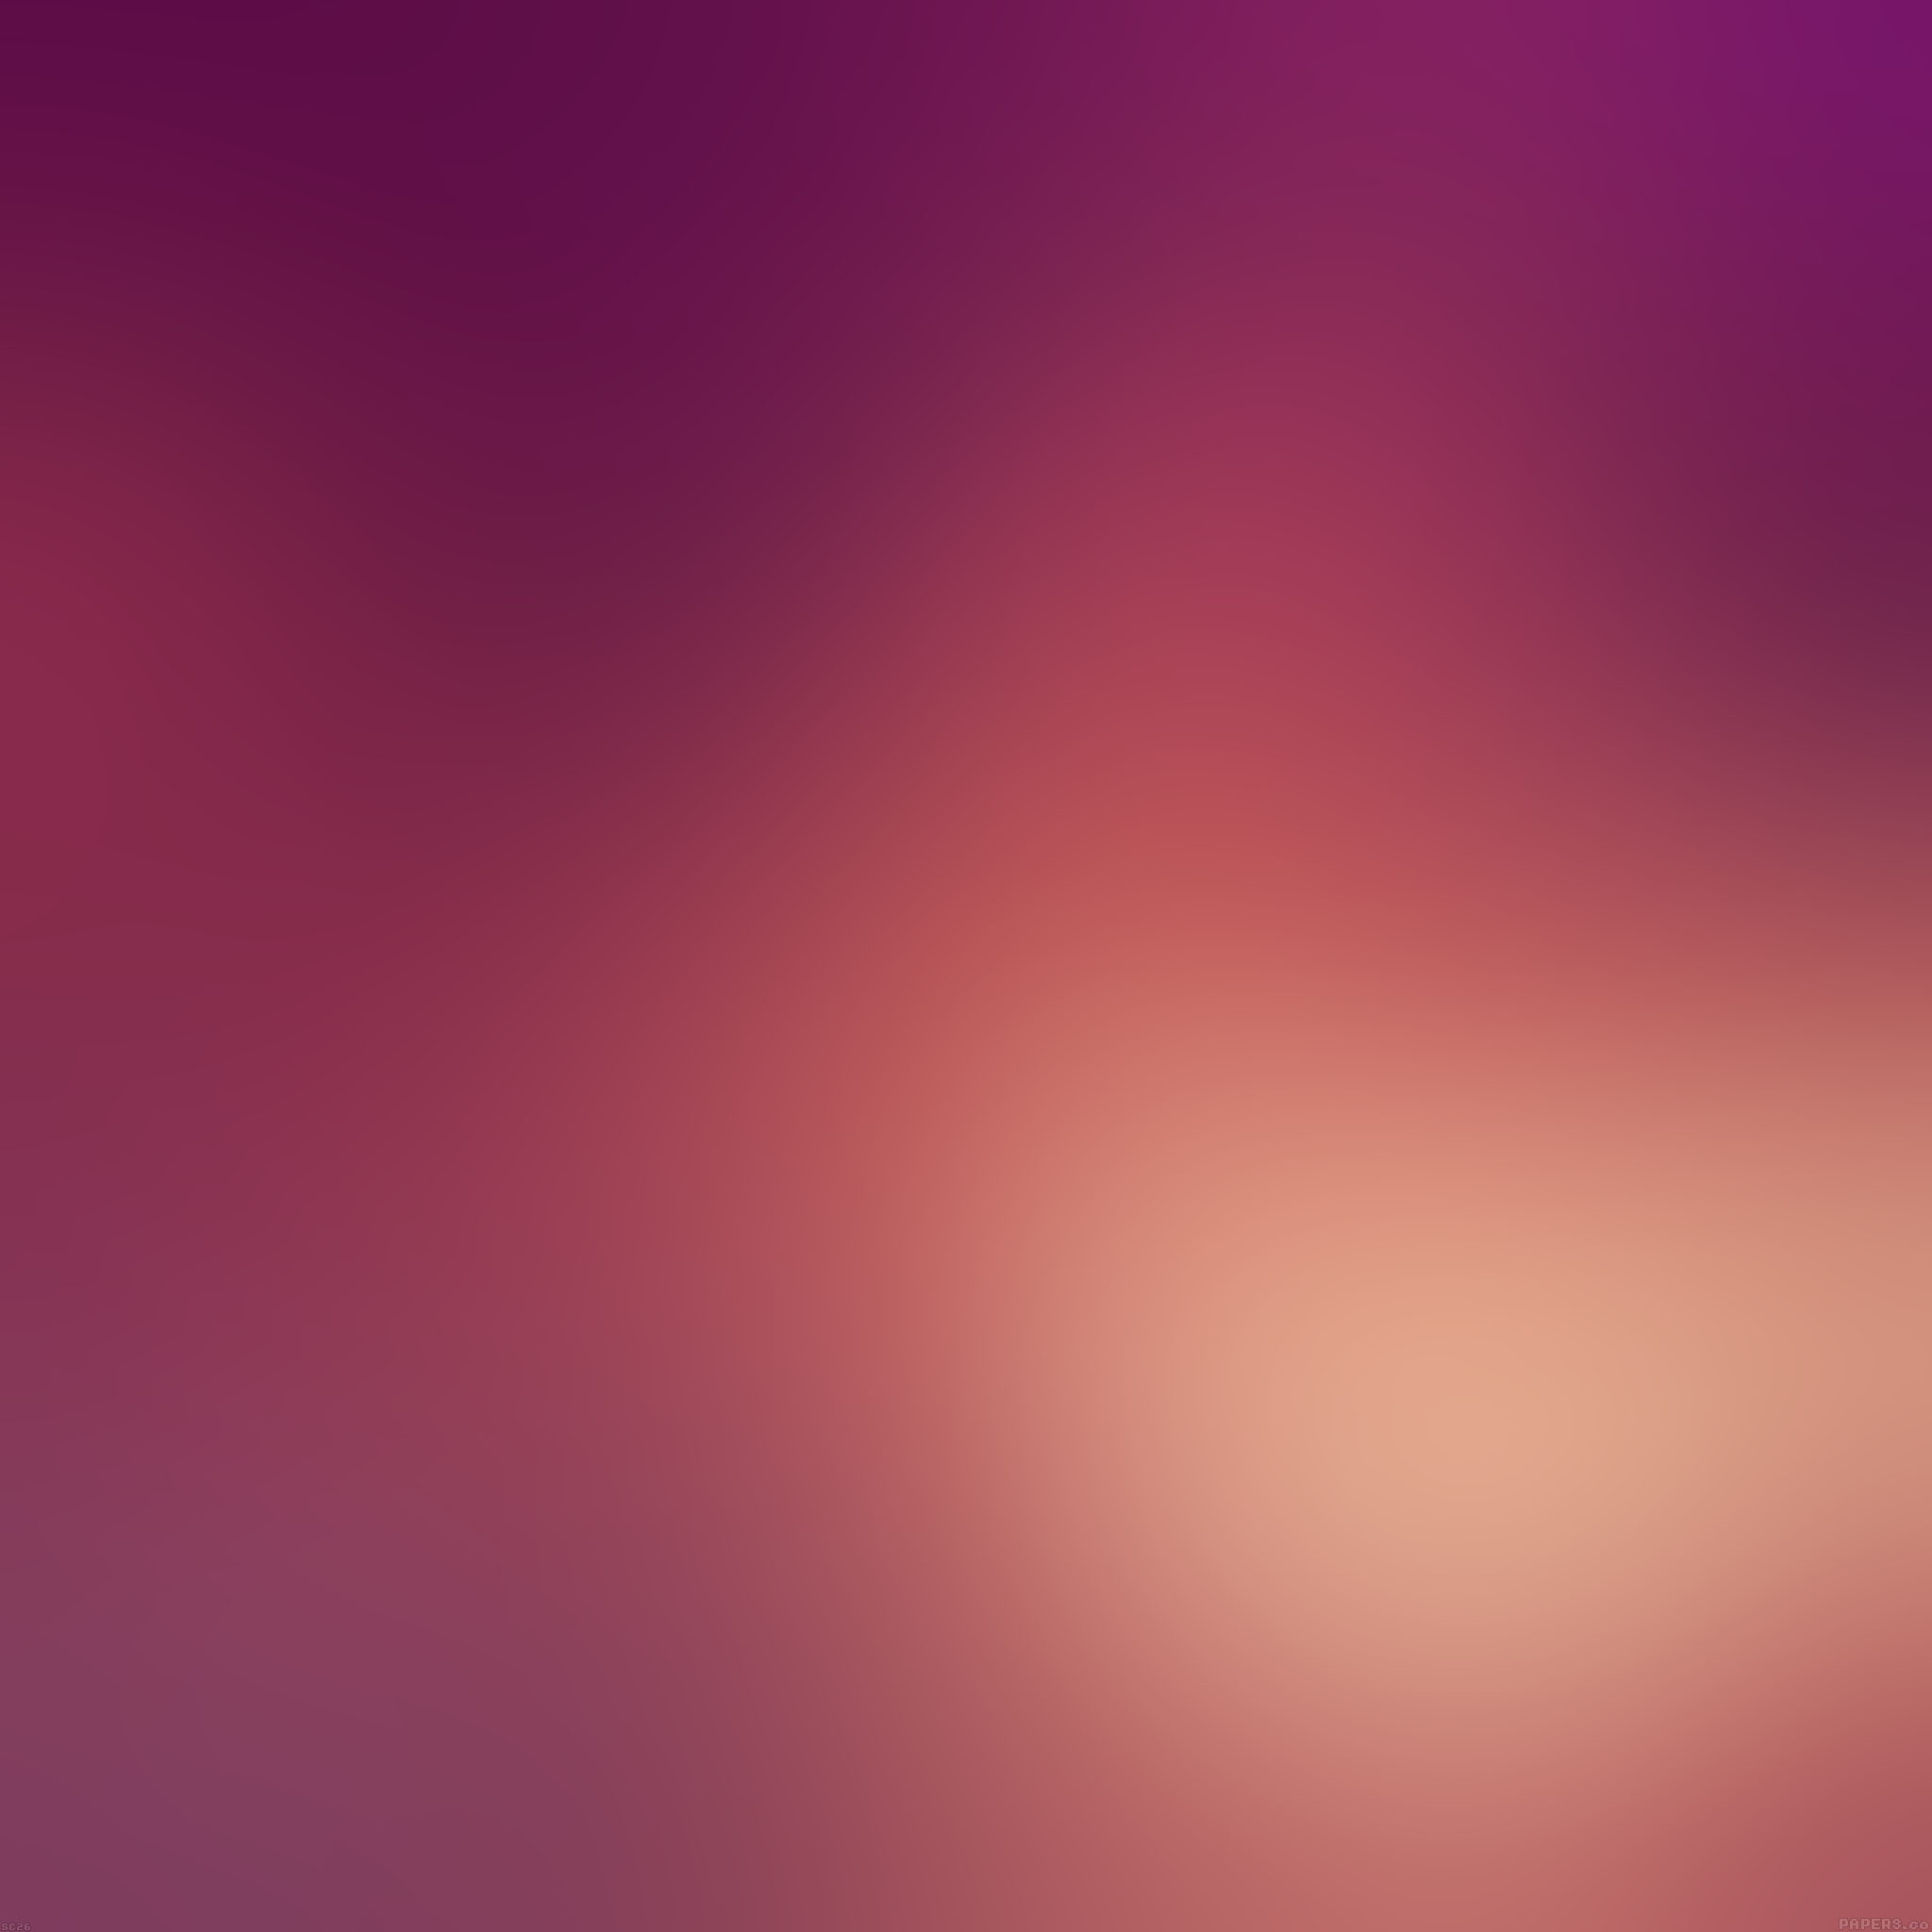 Wallpaper Love Violet : FREEIOS7 sc25-violet-peace-love-blur - parallax HD iPhone iPad wallpaper